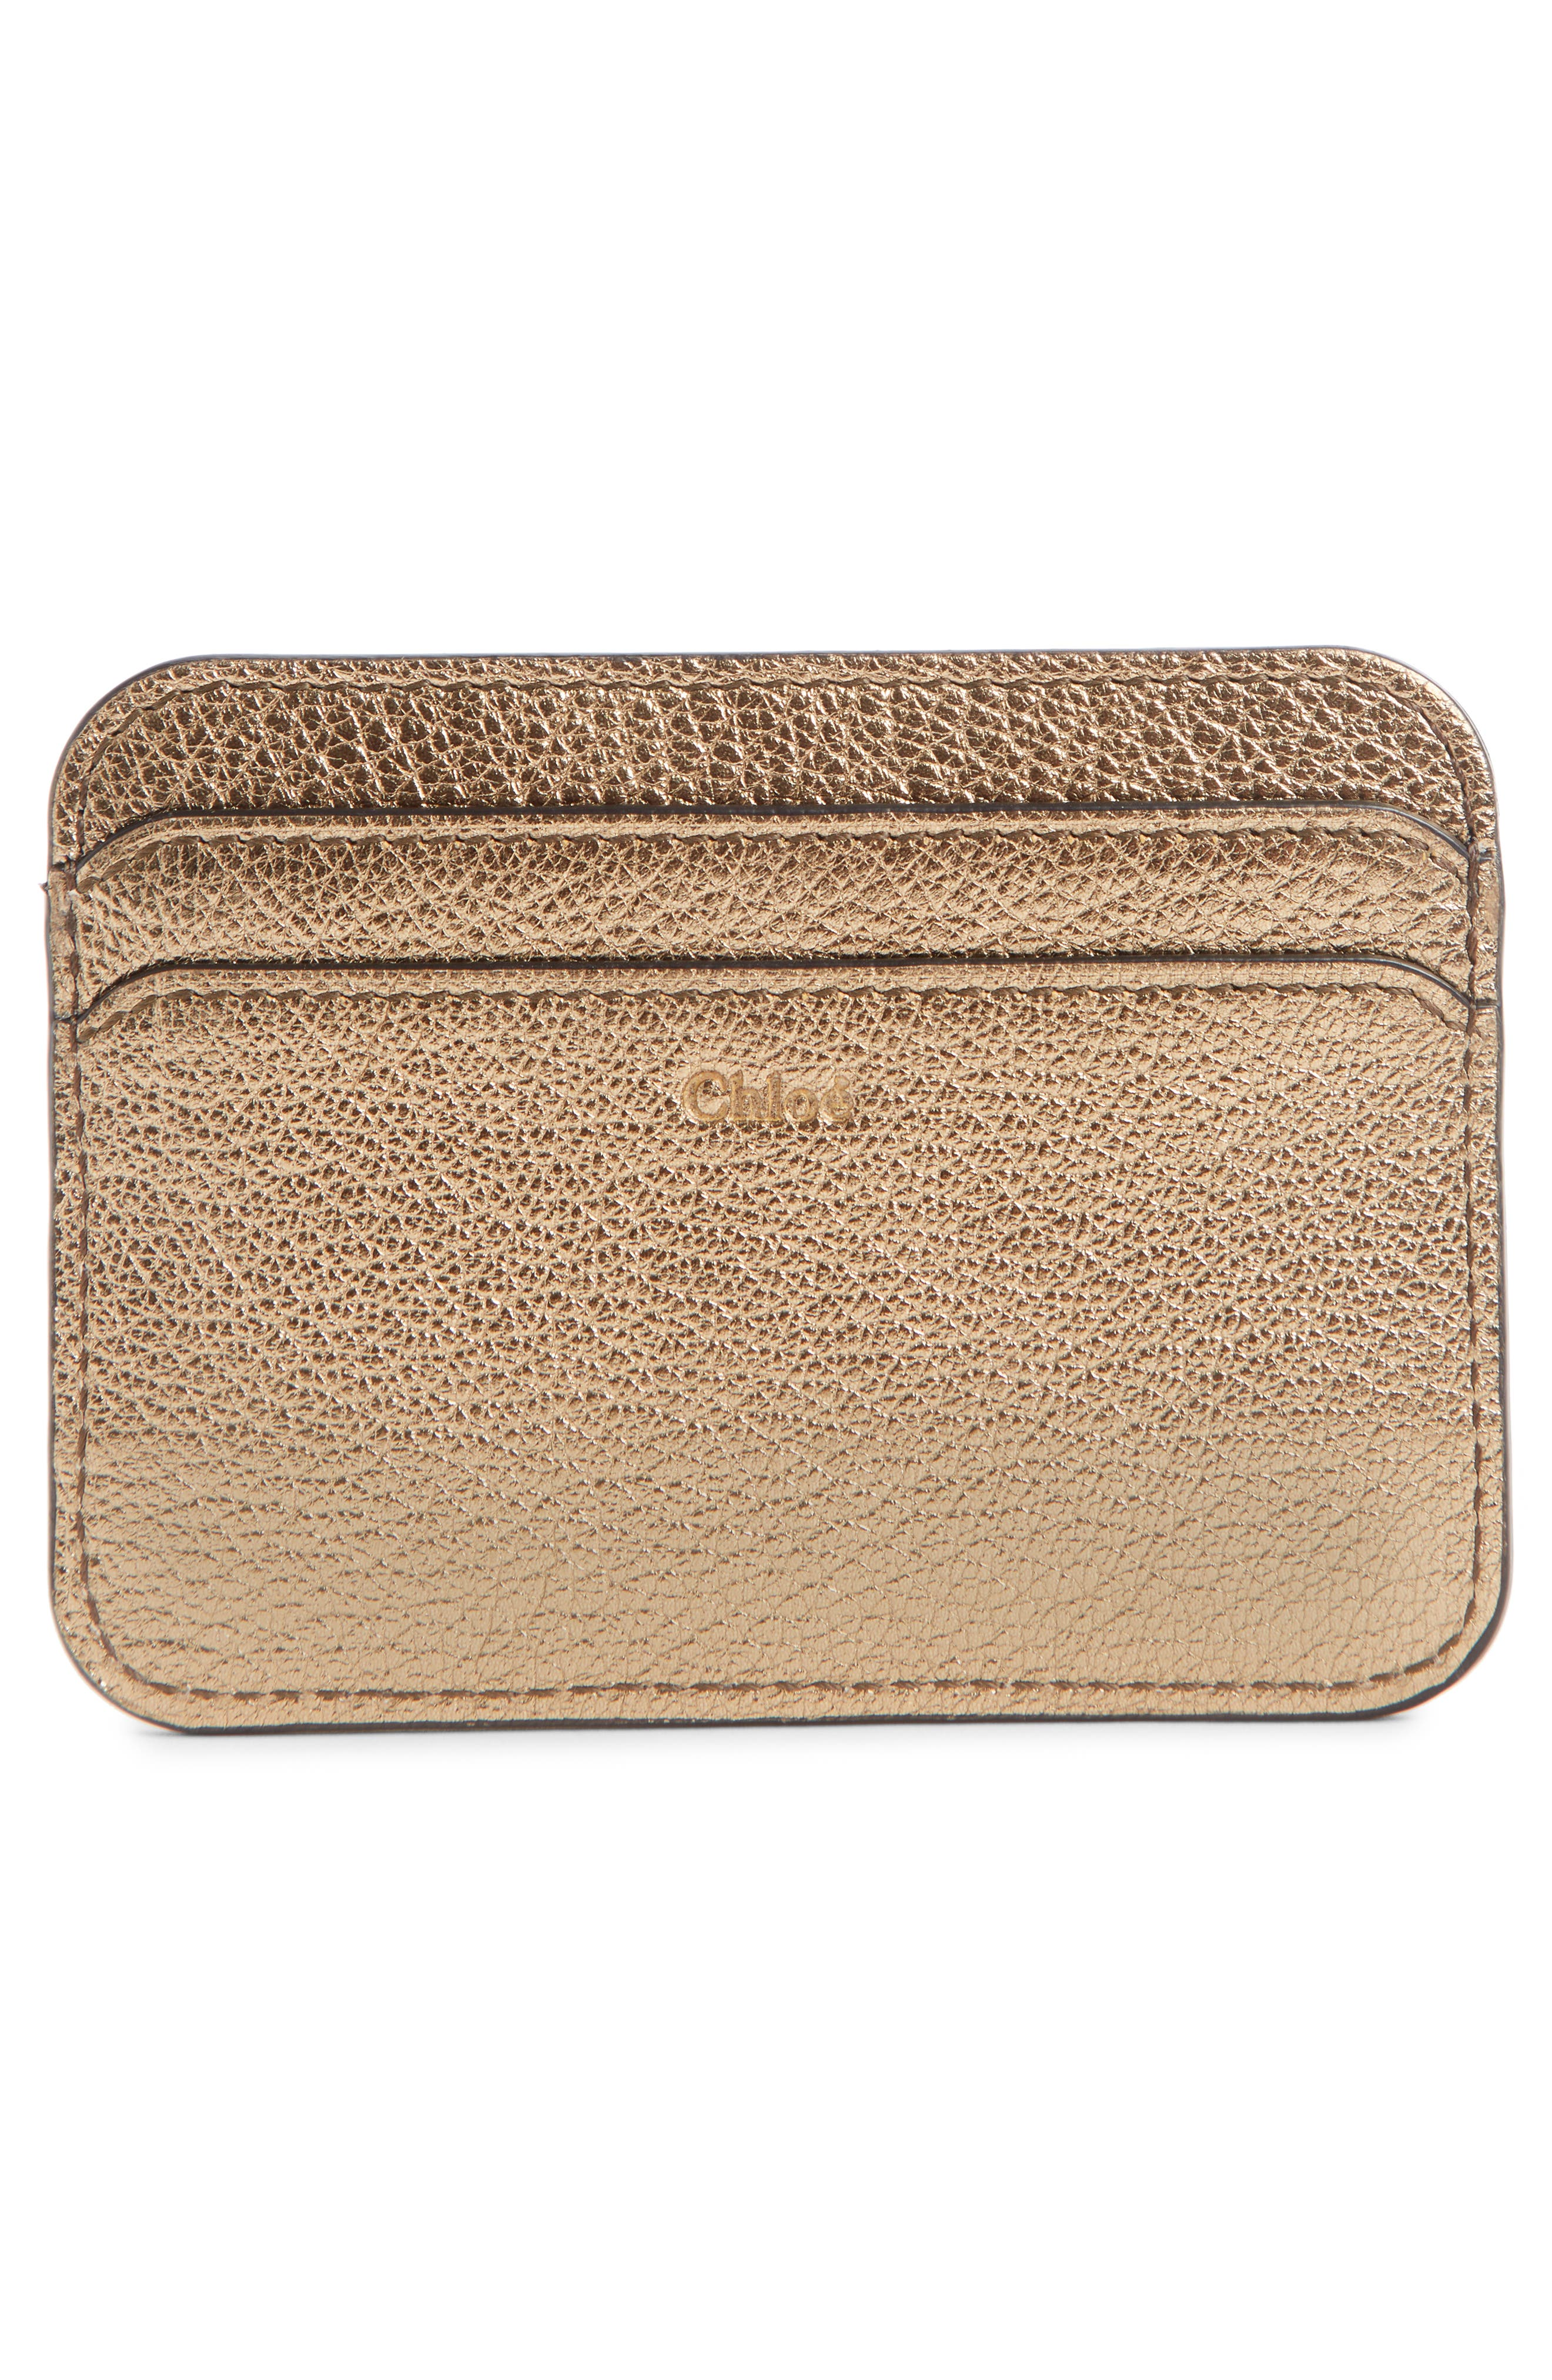 Metallic Leather Card Case,                             Alternate thumbnail 2, color,                             GOLD